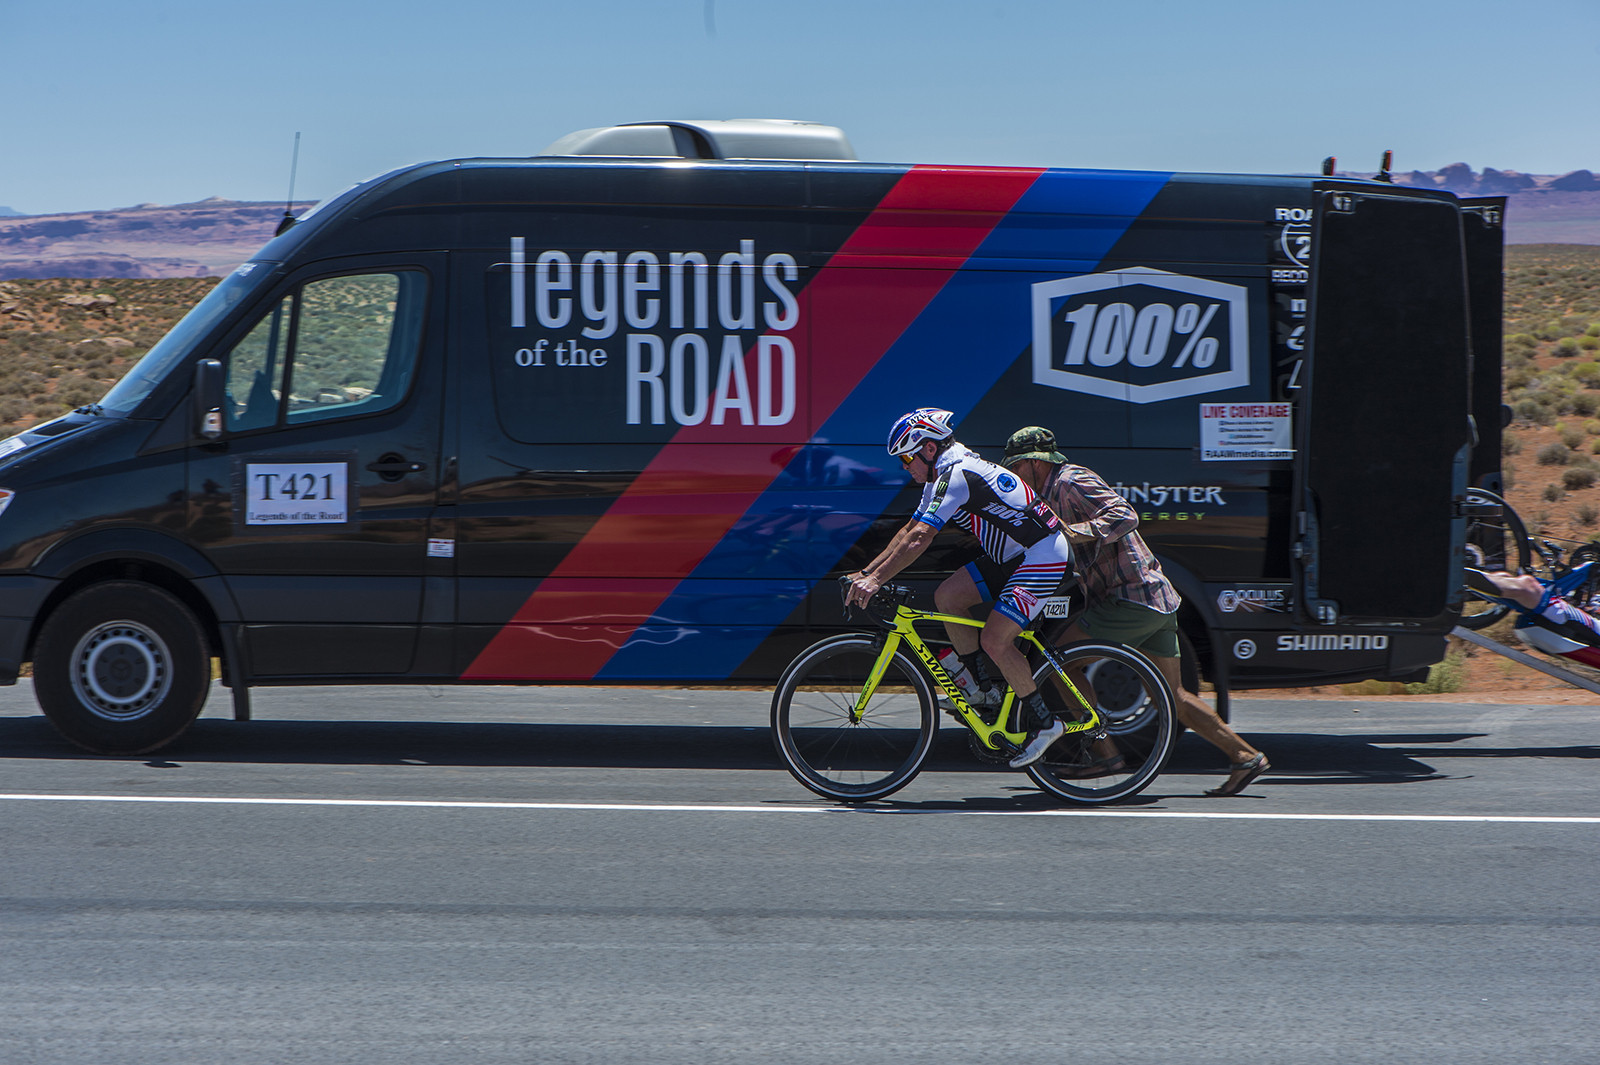 This Sprinter and its crew provided around-the-clock support to Legends all the way across the country.